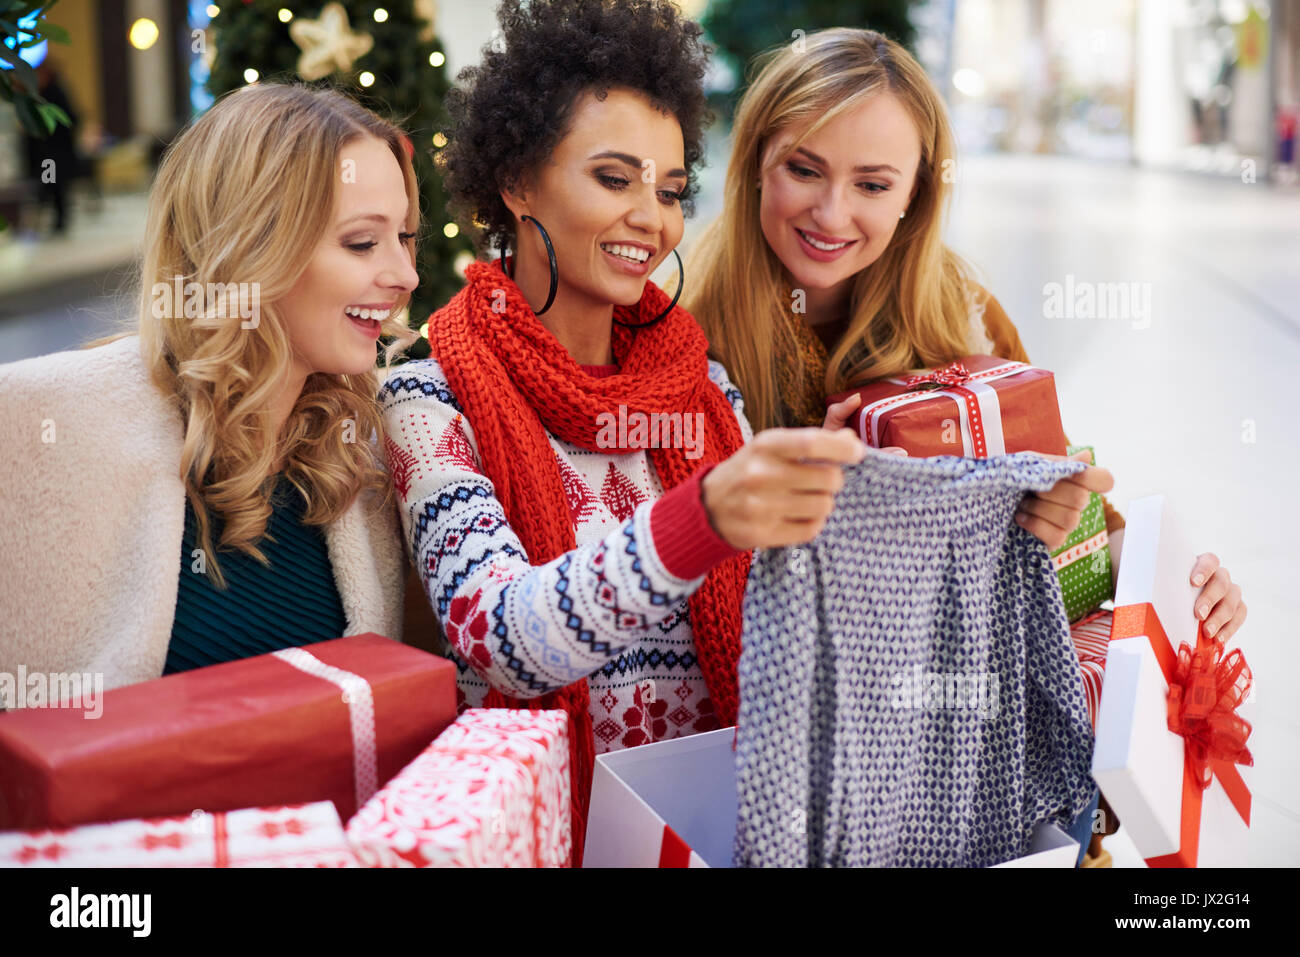 Everything has been bought for Christmas gifts - Stock Image